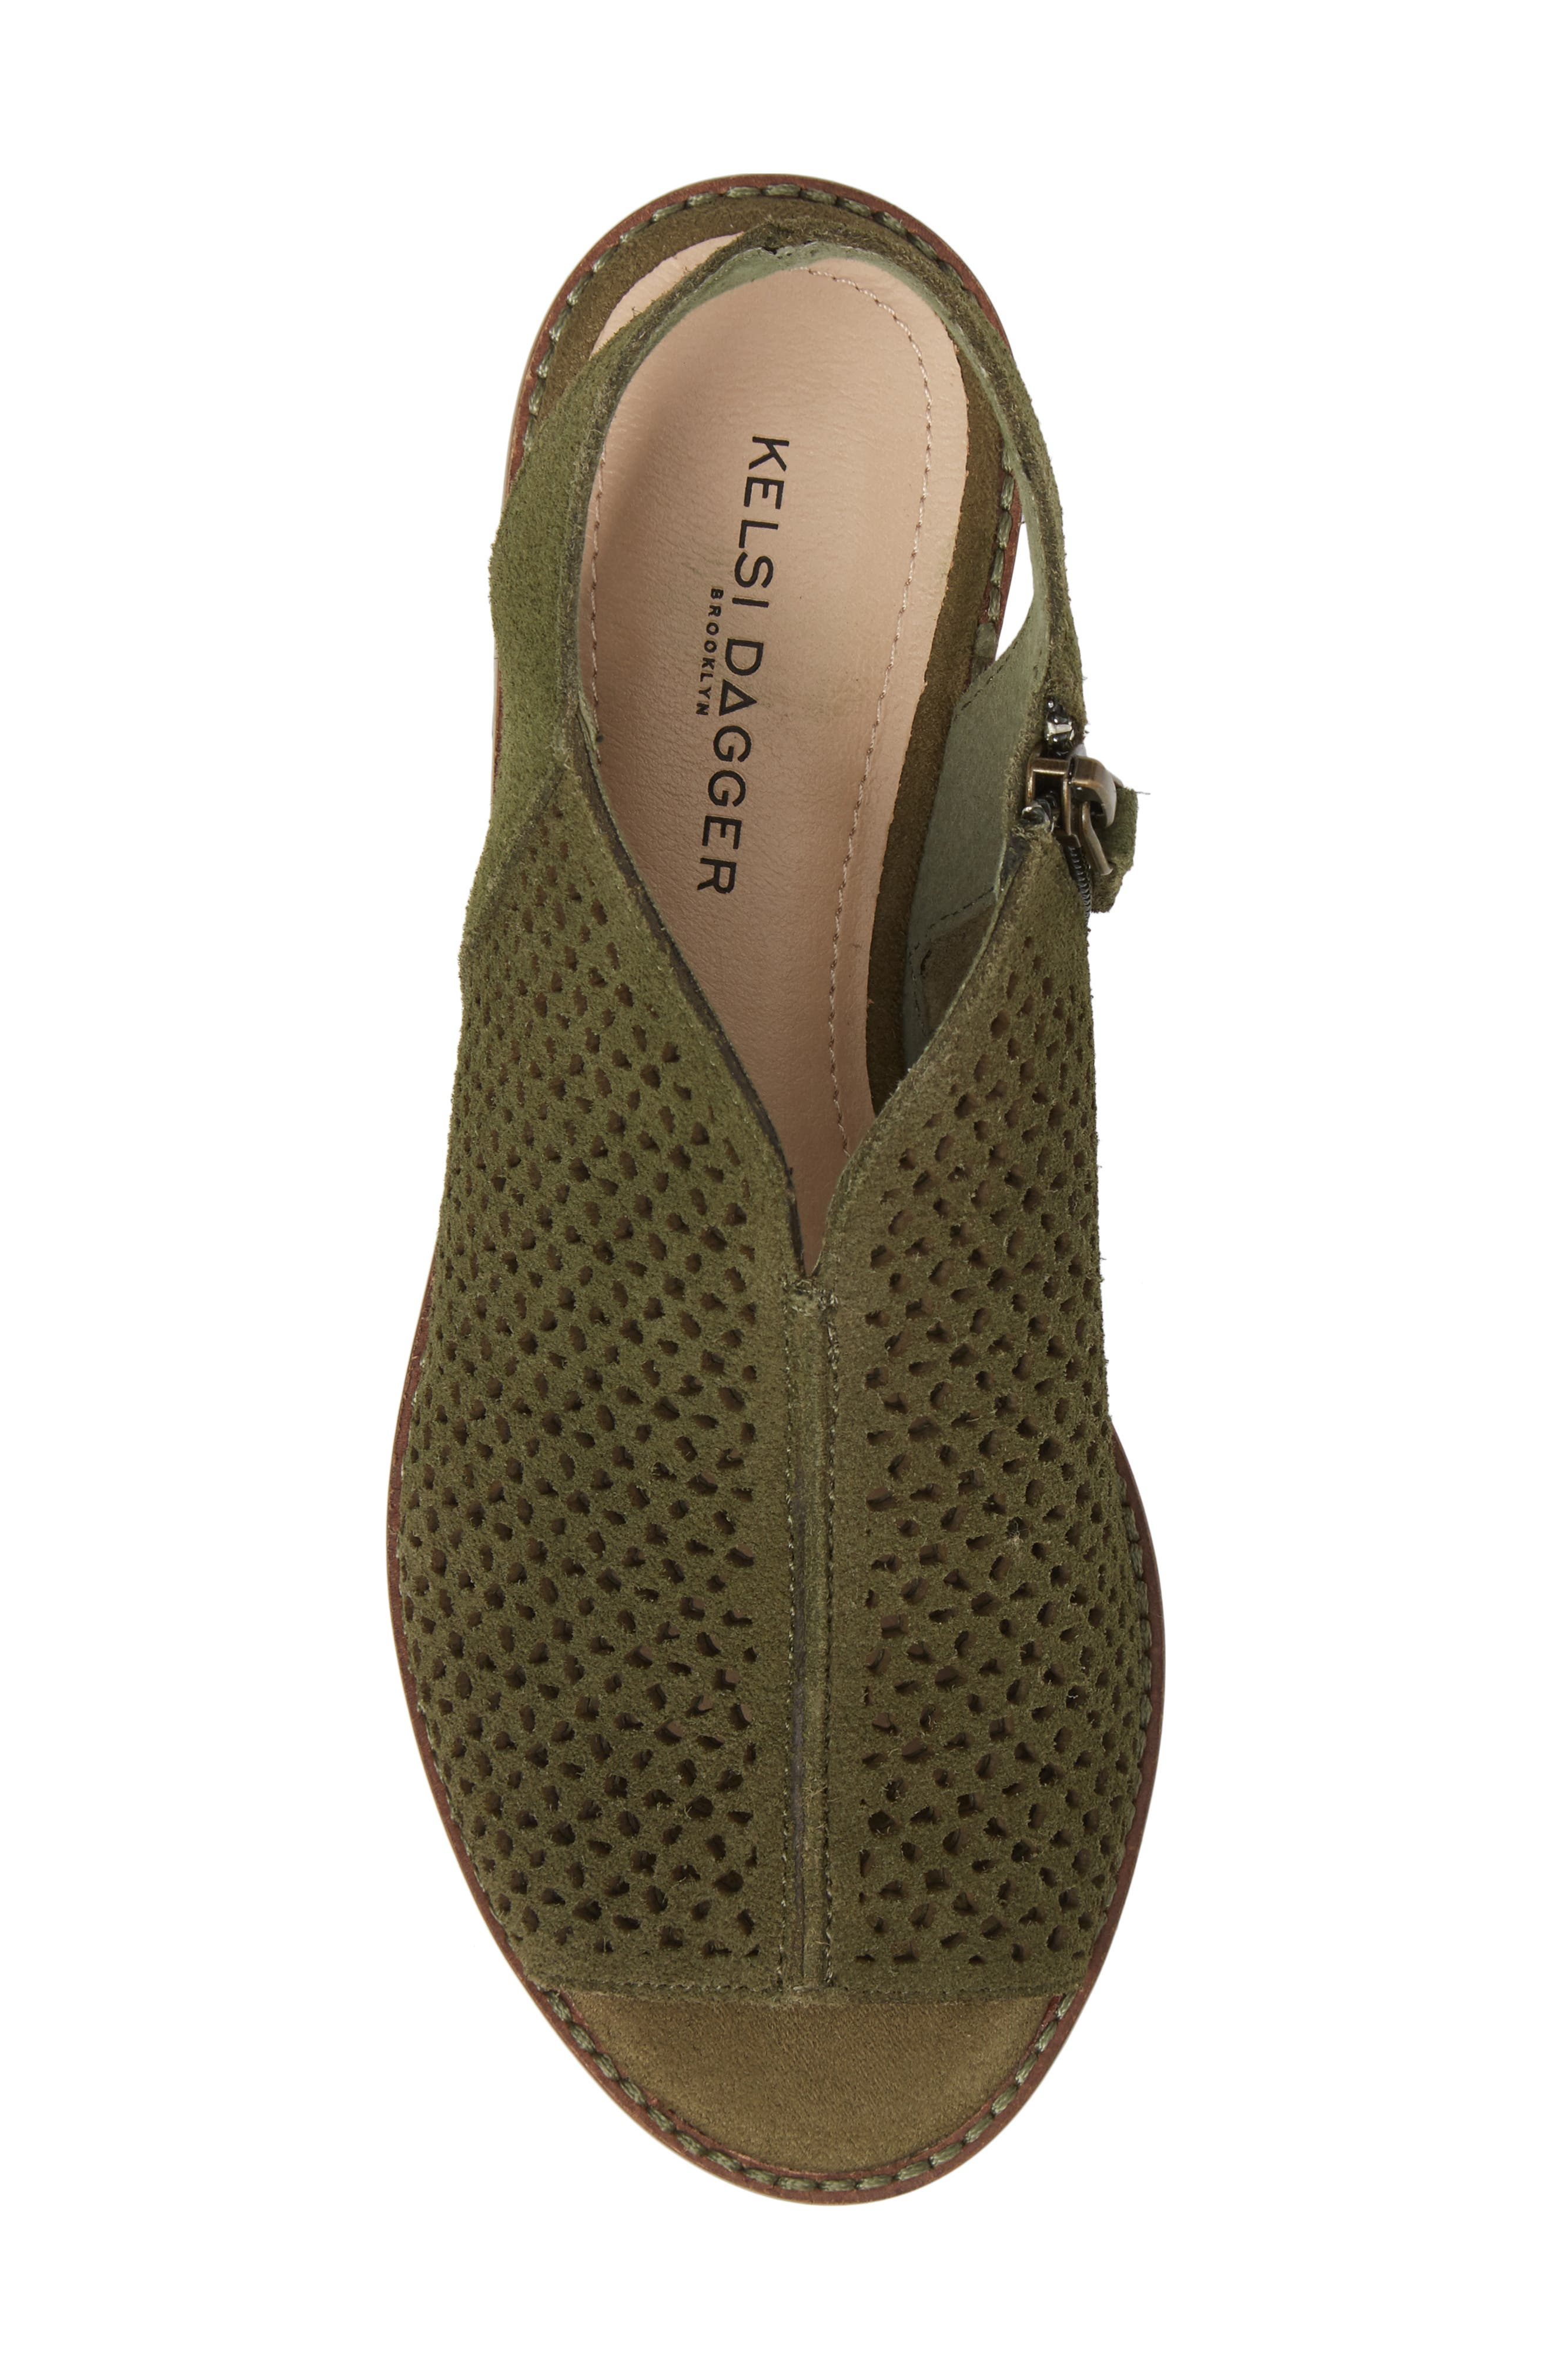 Seneca Perforated Sandal,                             Alternate thumbnail 5, color,                             Olive